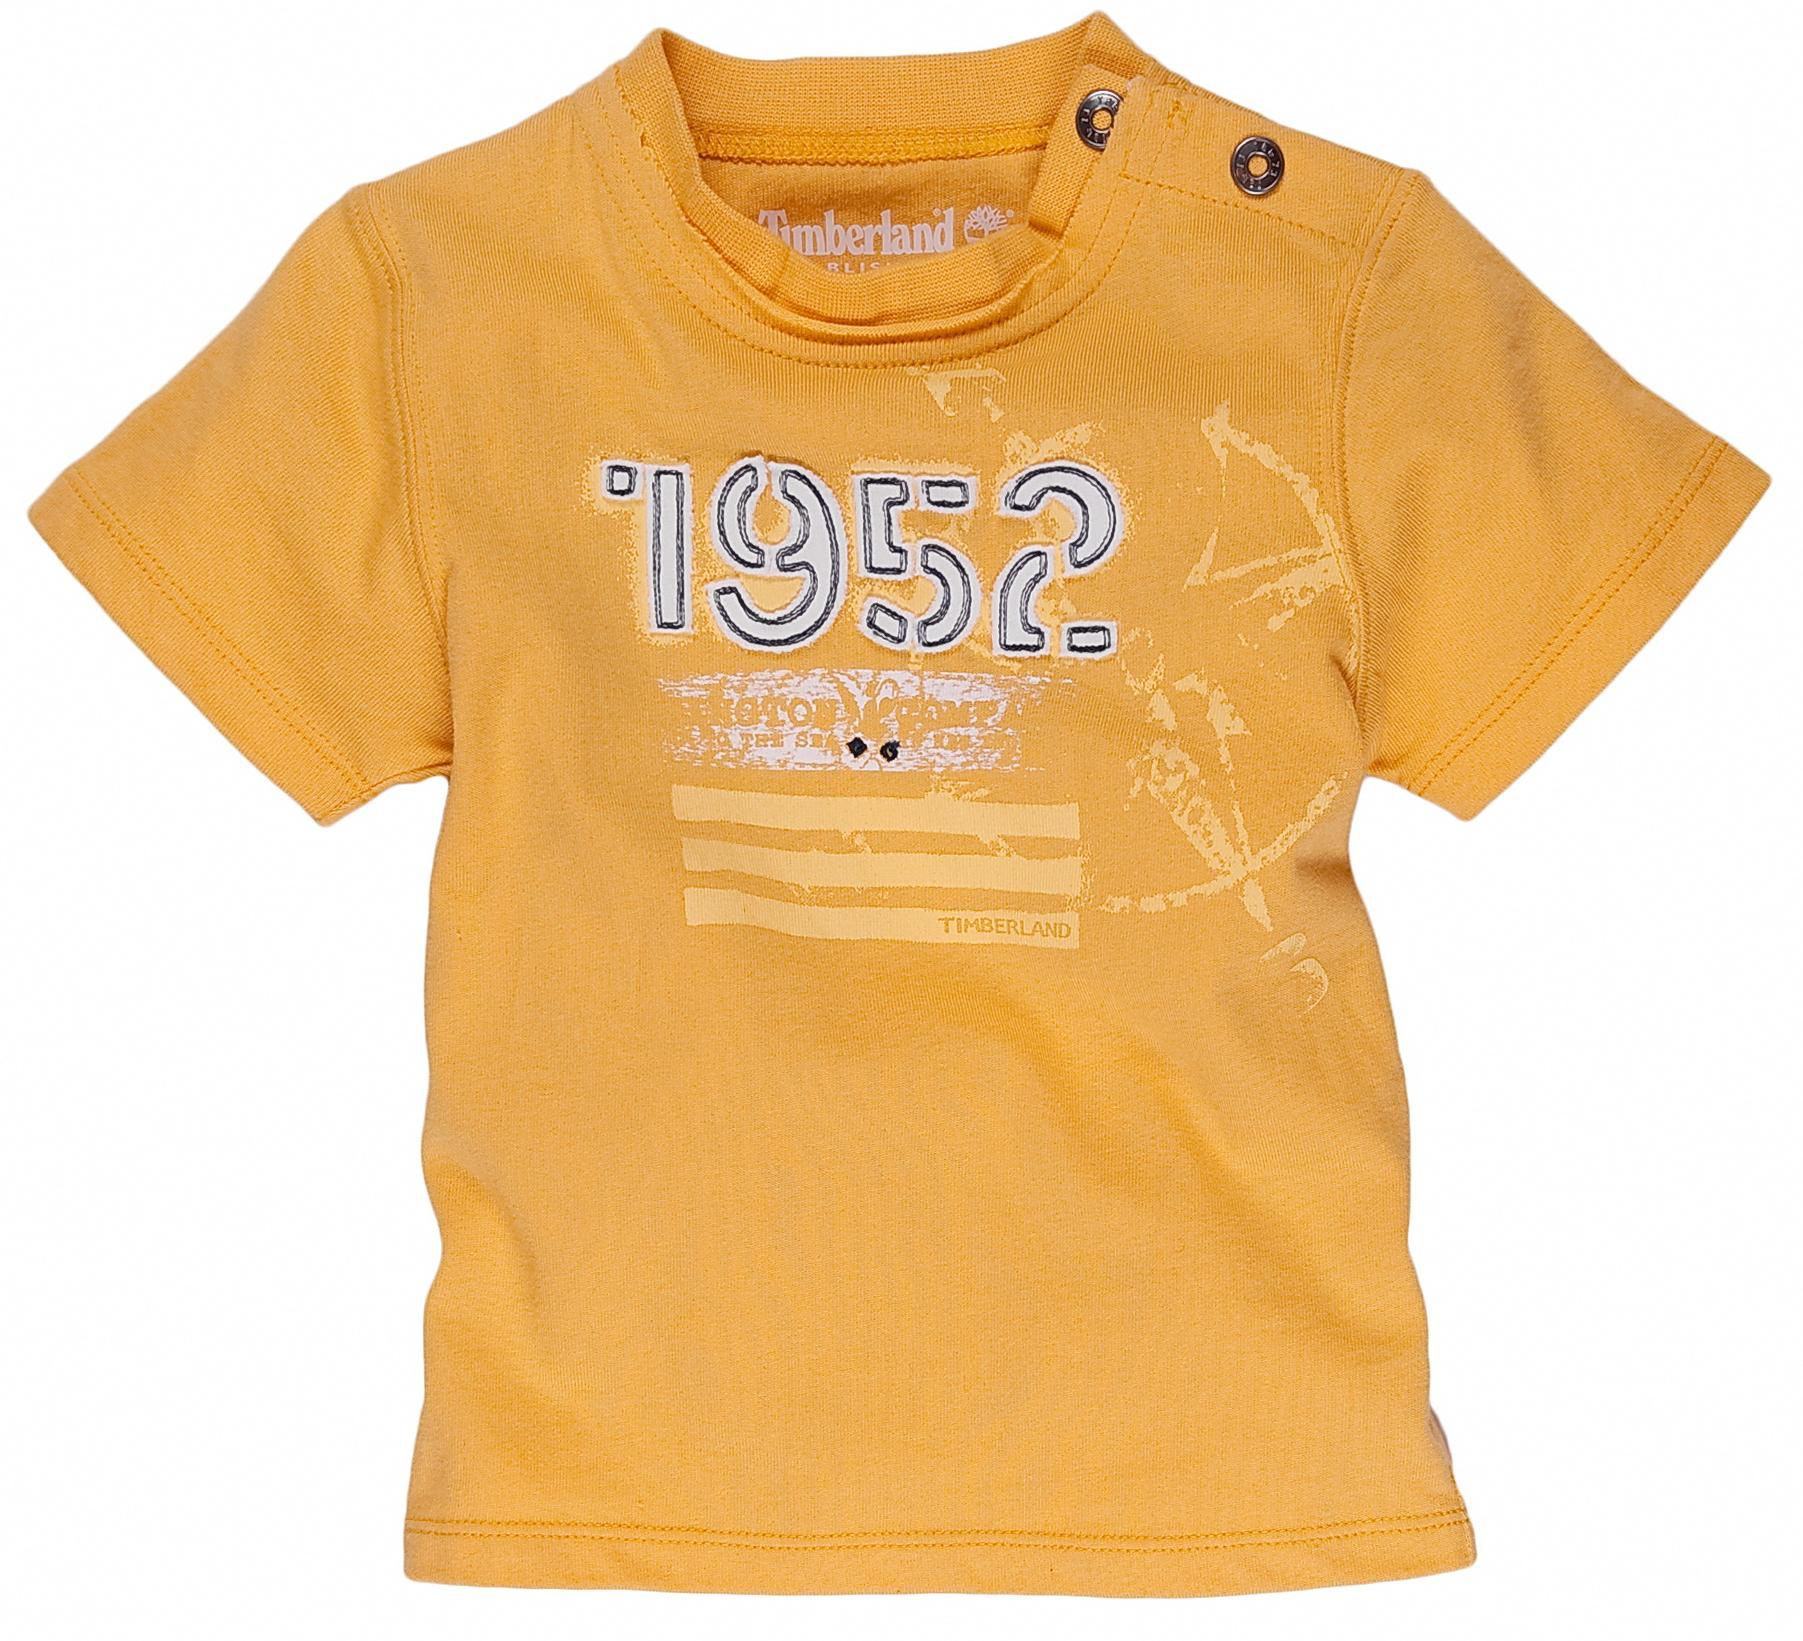 Timberland Childrens Timberland Short-sleeved T-shirt, product image